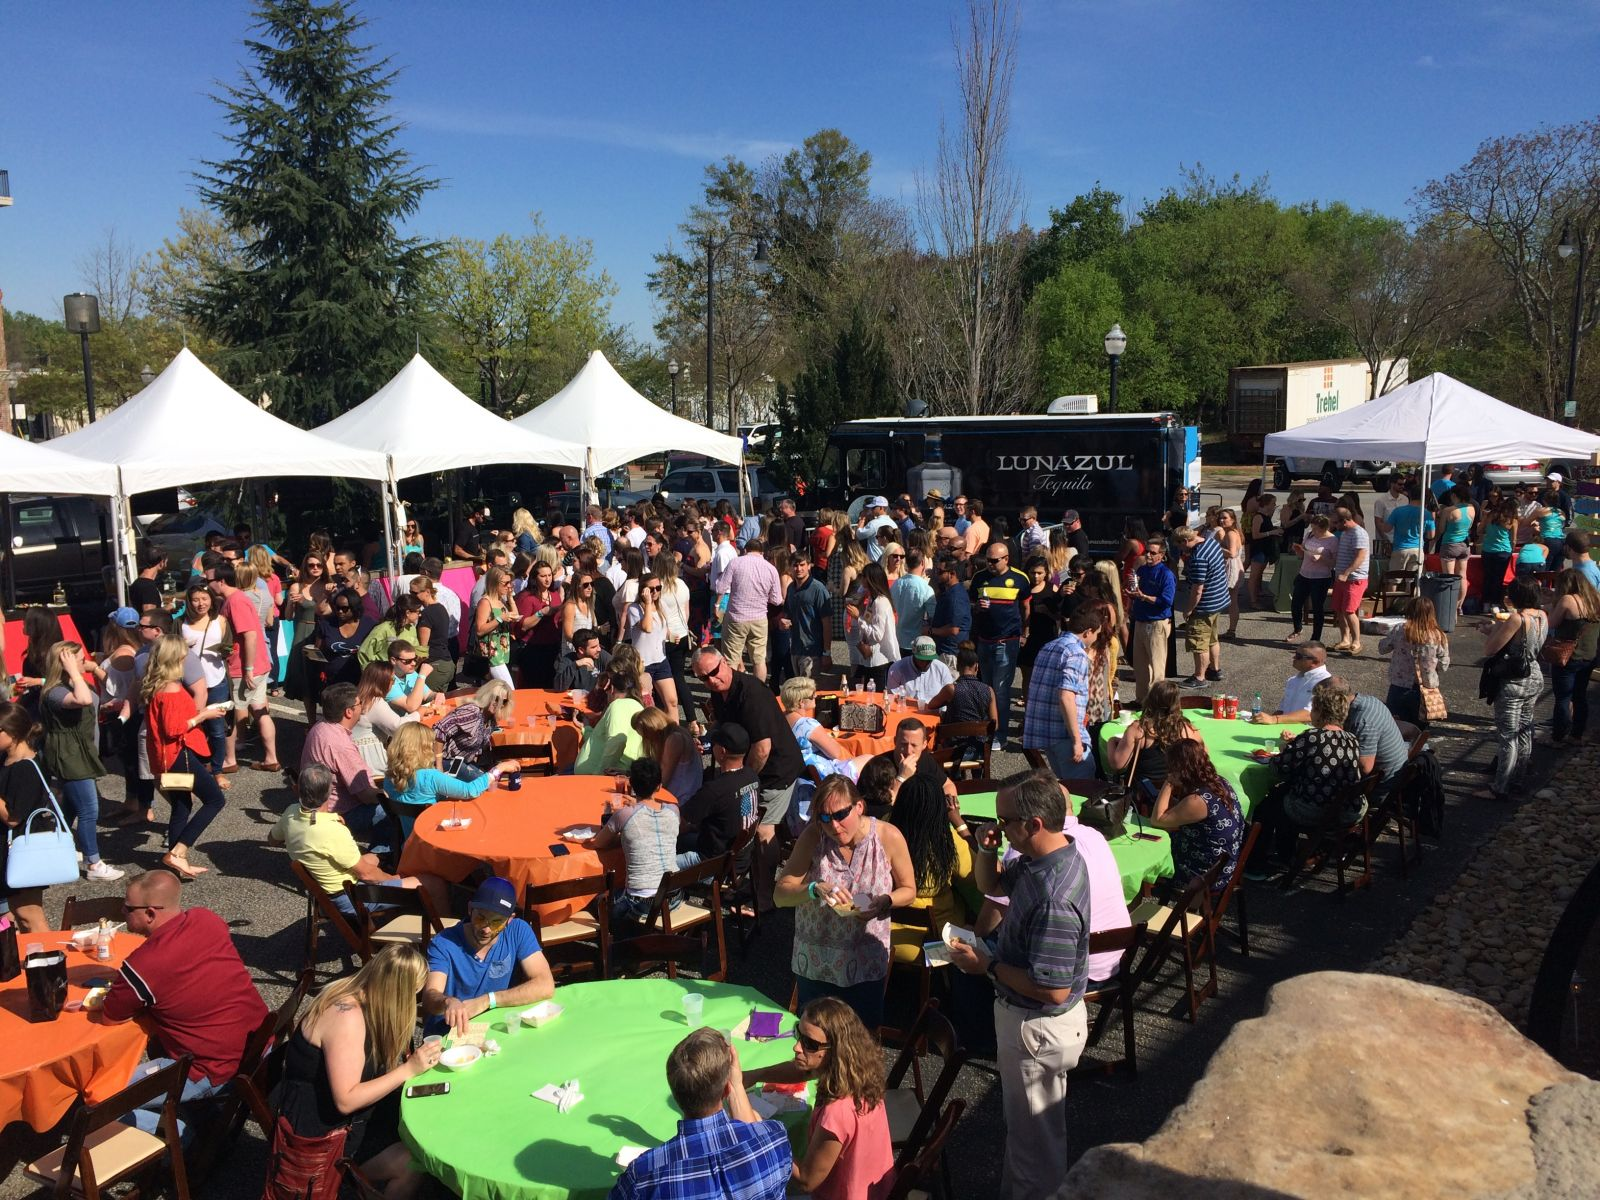 More than 800 people attended Tacos n' Tequila Fiesta. (Photo/Provided)